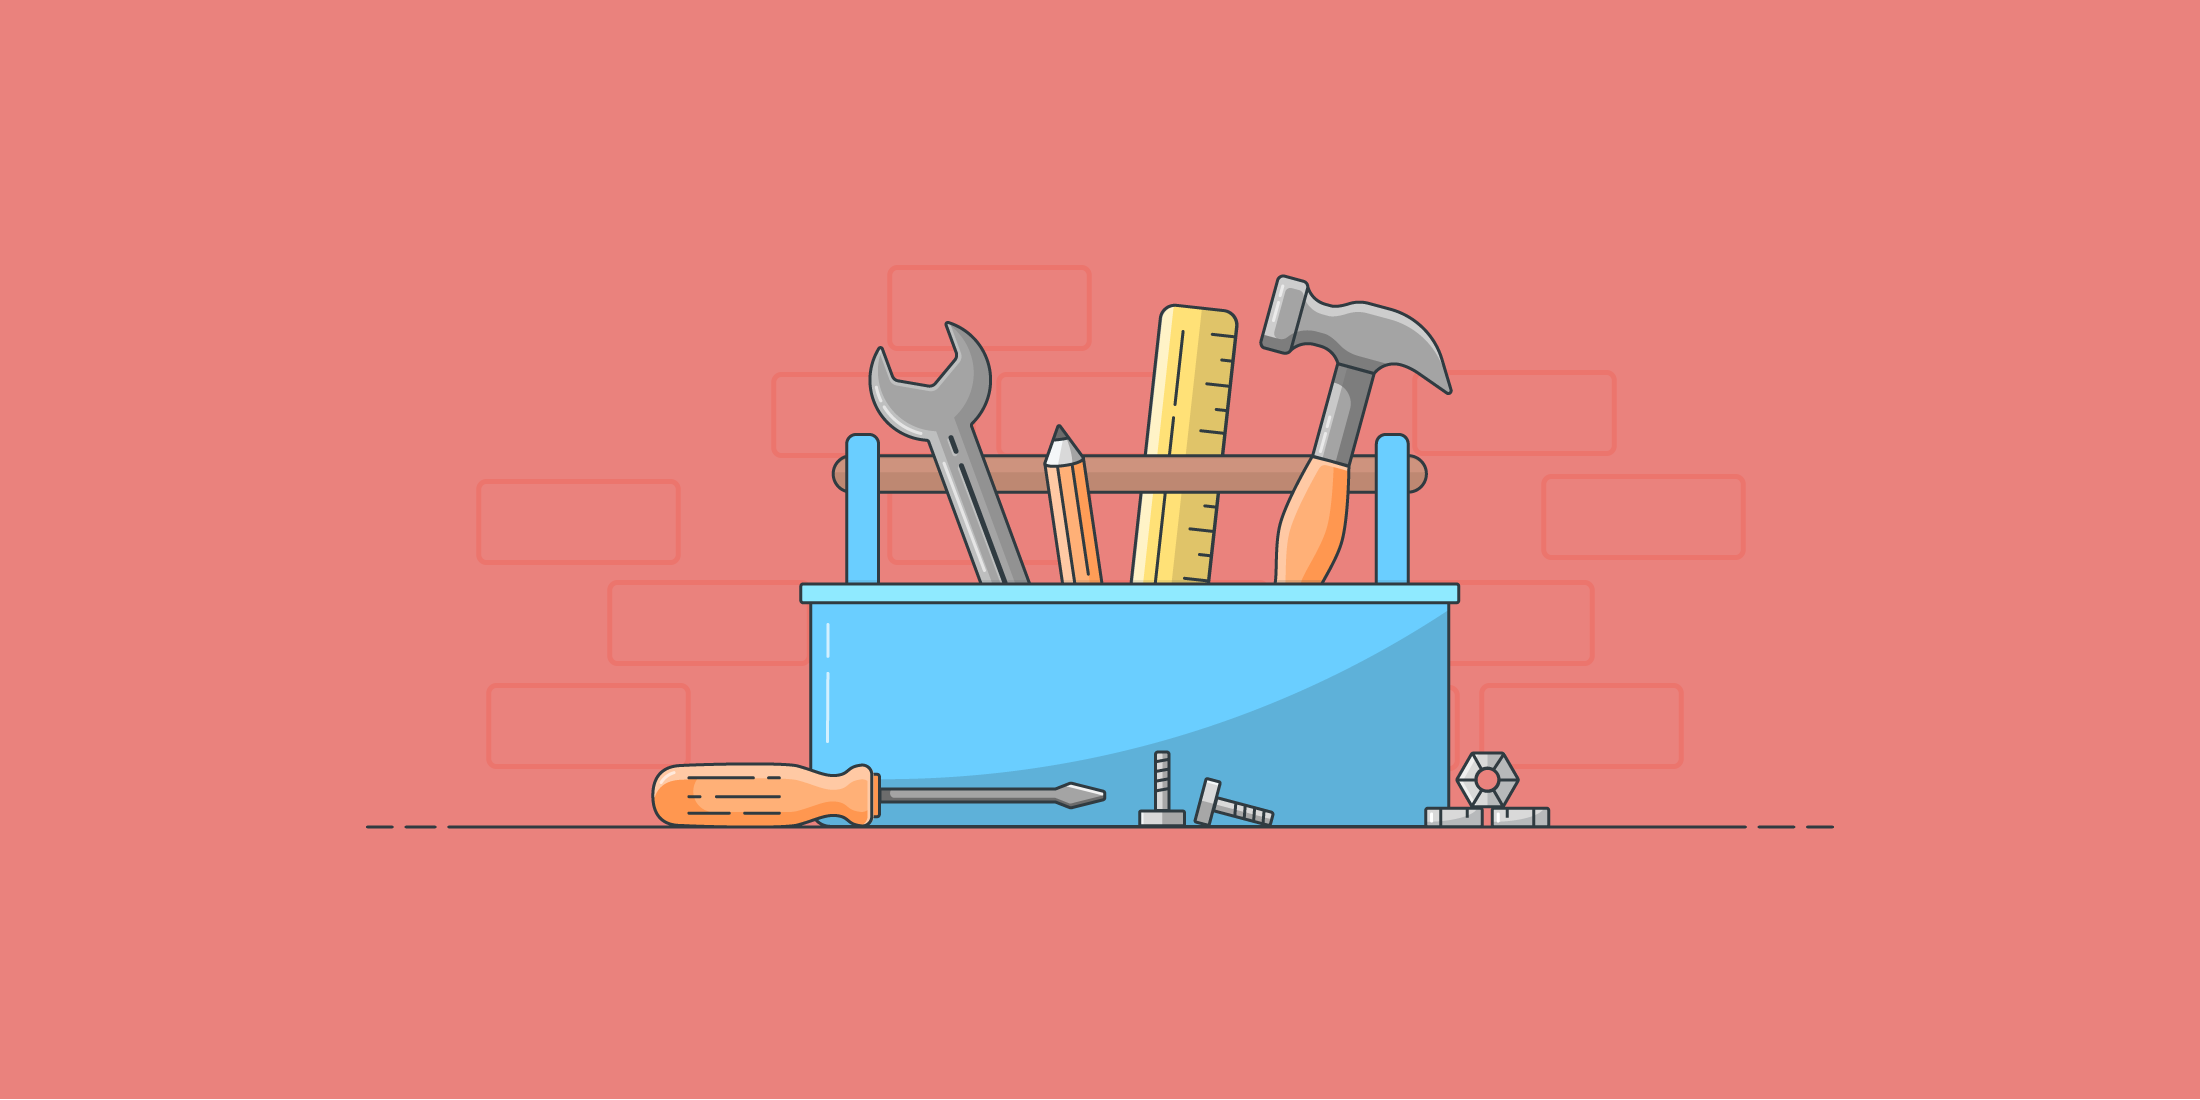 Our favorite tools for running an eCommerce business